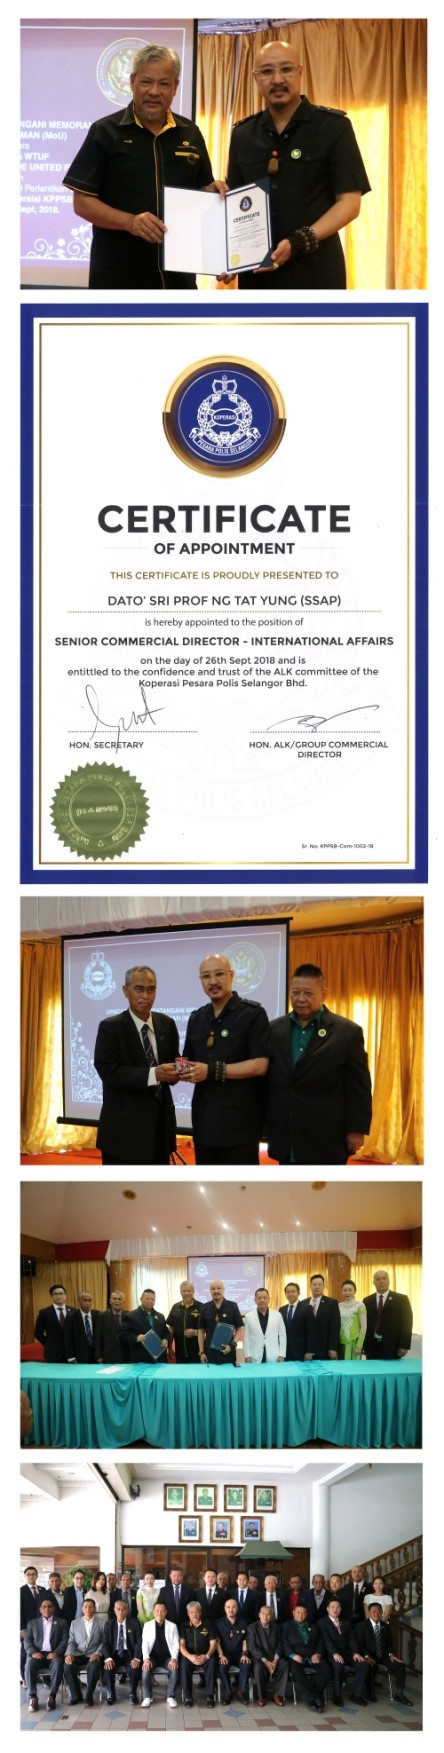 Police Retirees Cooperative Selangor, KPPSB of Malaysia appoints founder of Heaven Springs Dynasty Harvest Group Dato' Sri Baima Aose as Senior Commercial Director